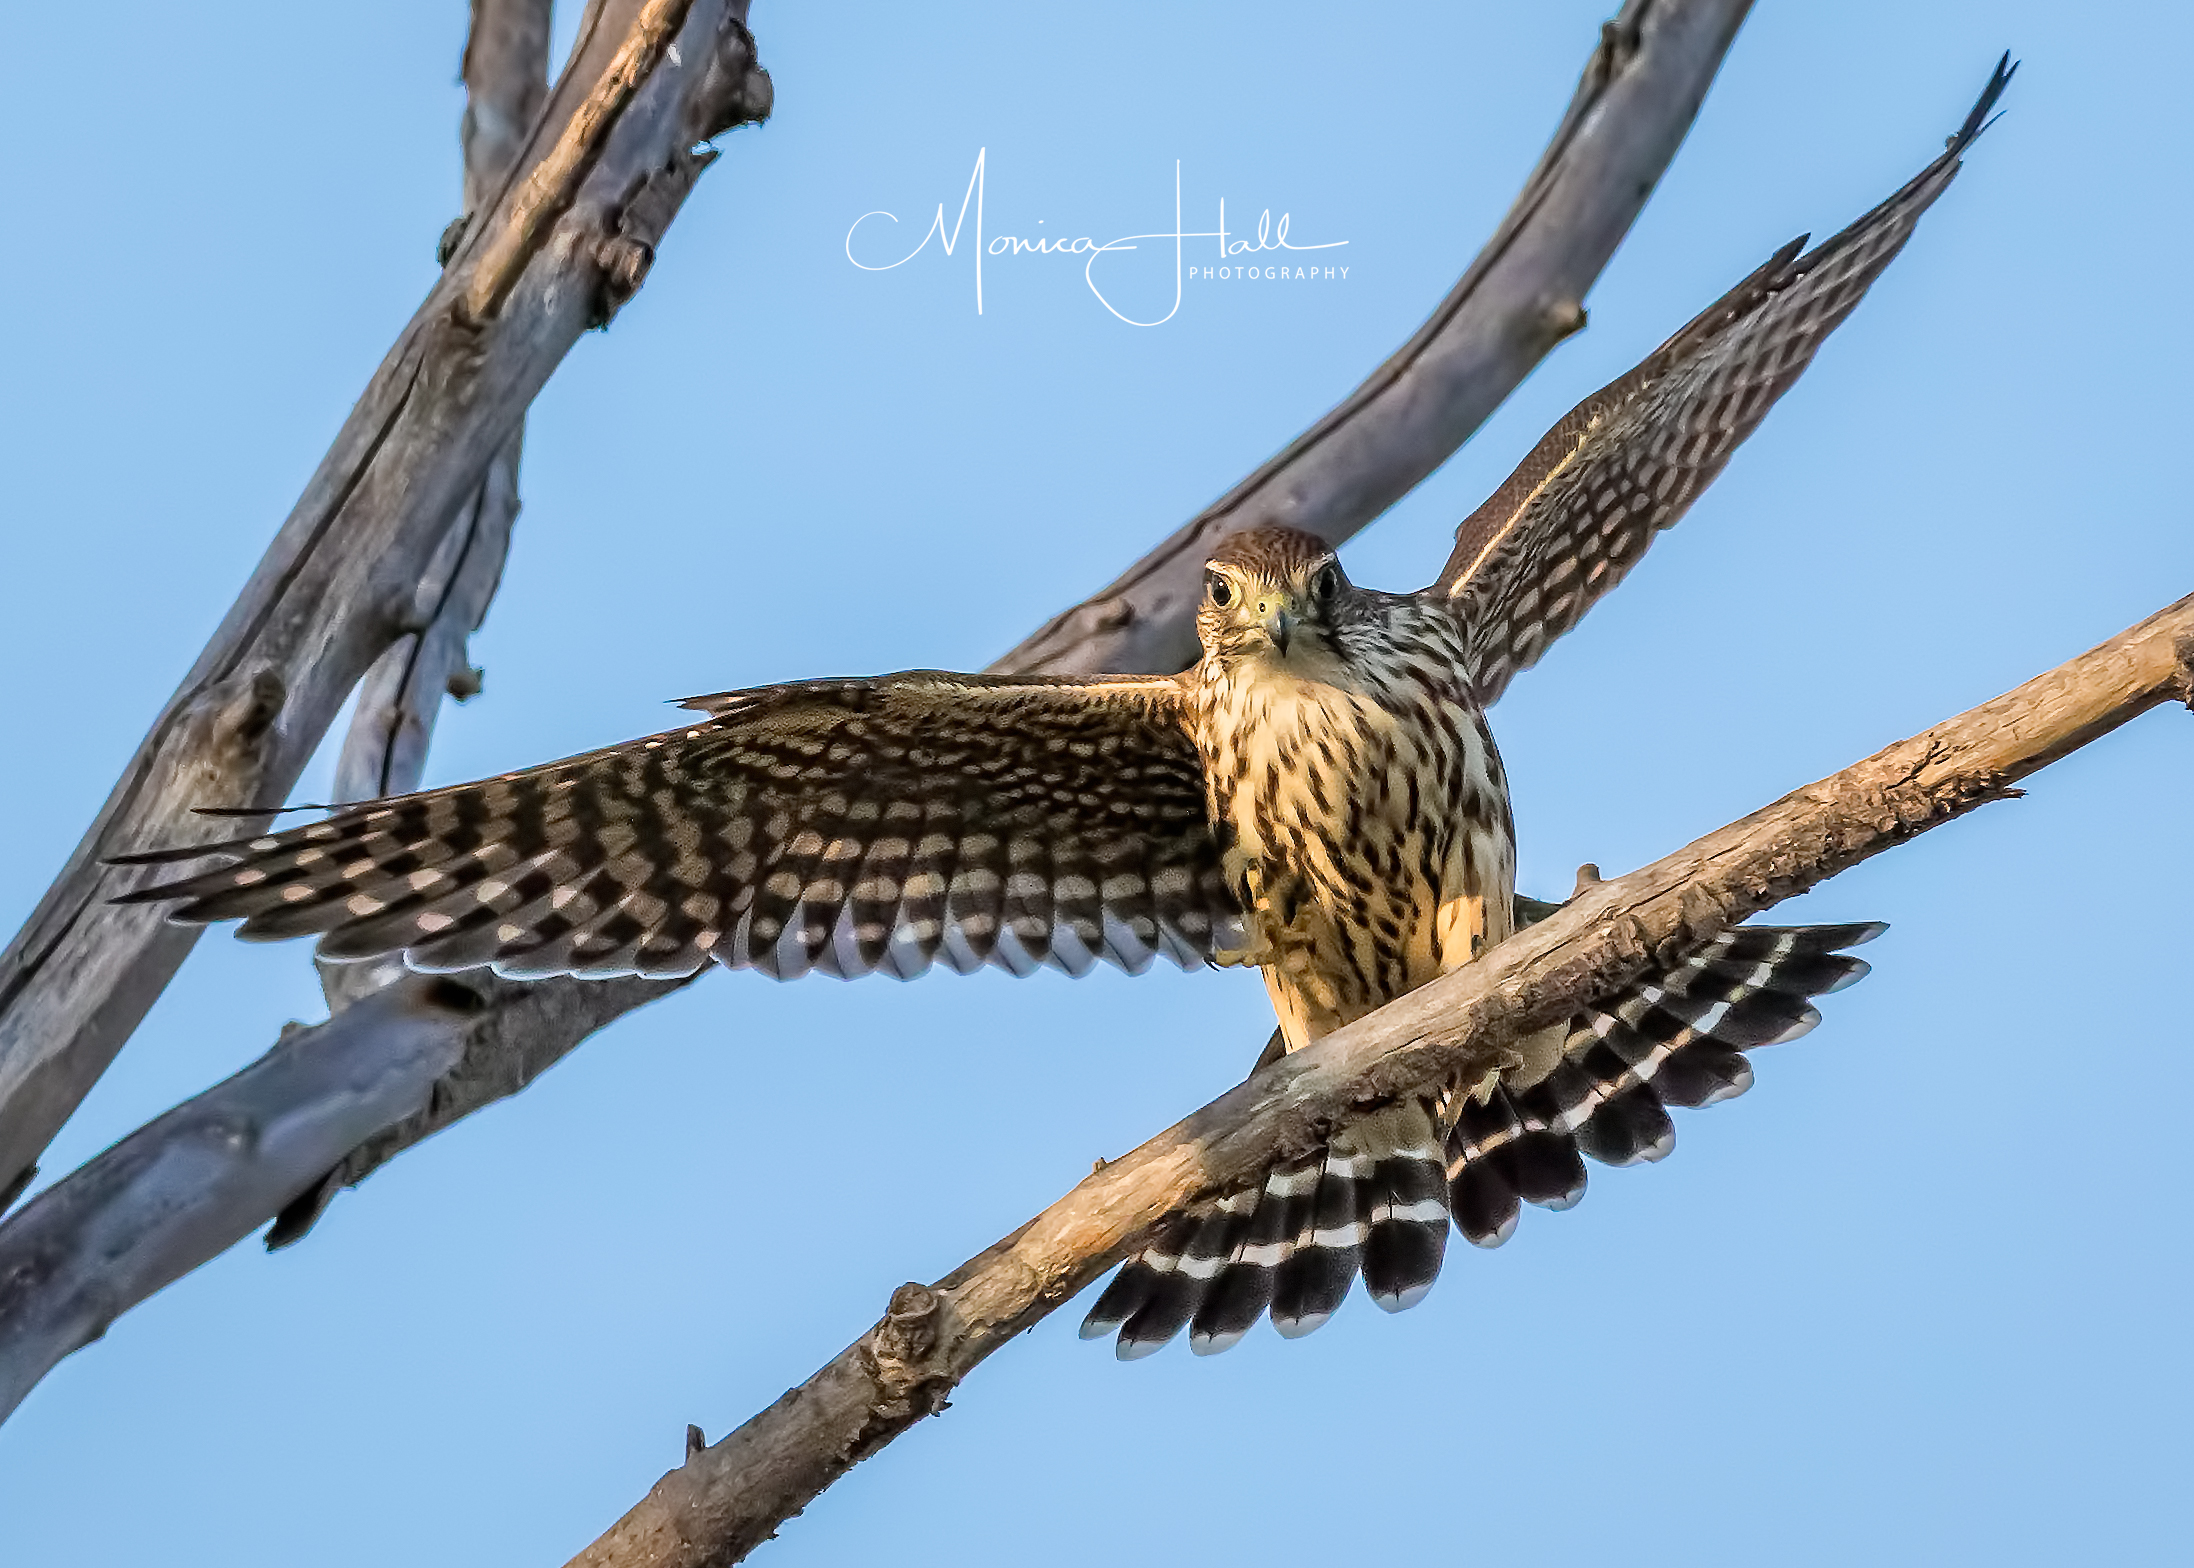 Merlin, photo by Monica Hall